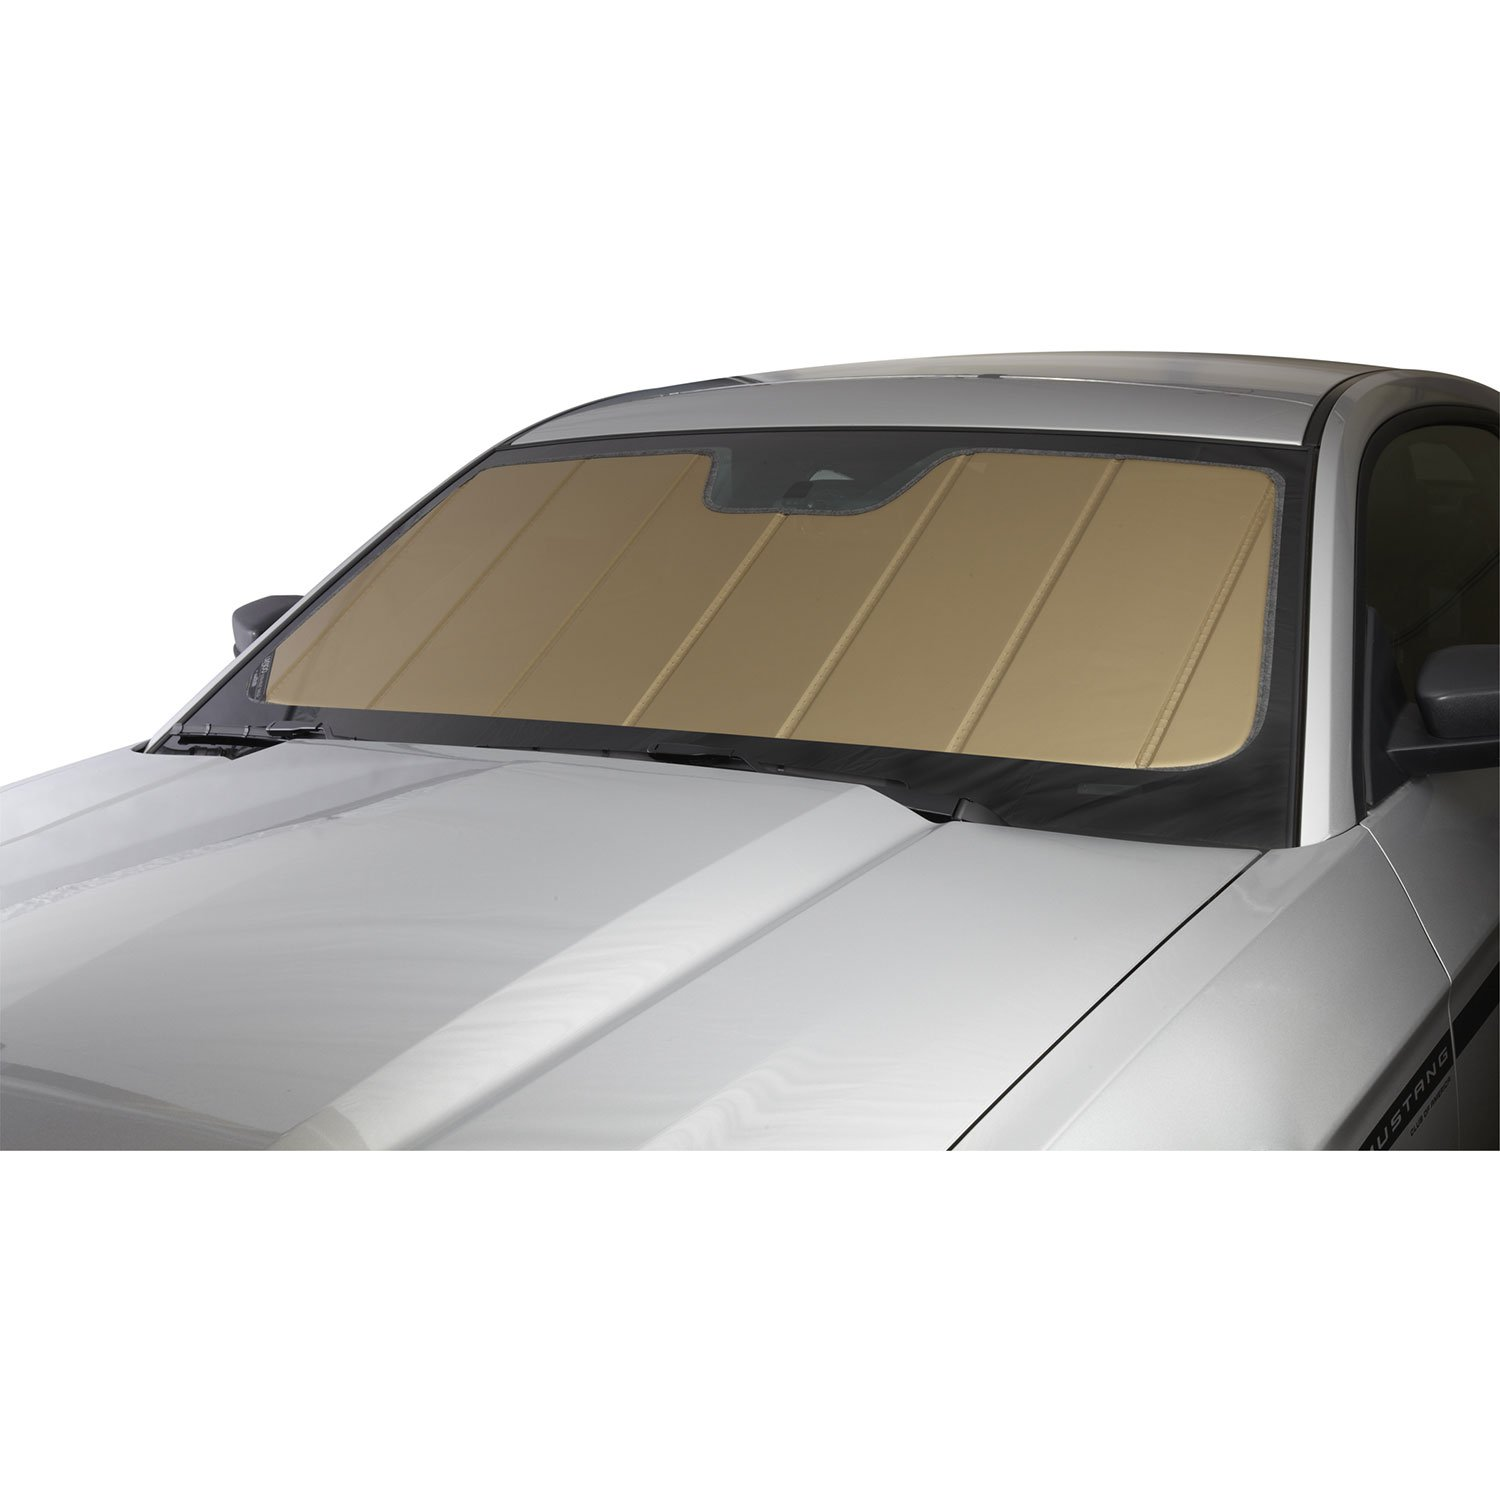 Covercraft UV11097GD Gold UVS 100 Custom Fit Sunscreen for Select Lexus RX350/RX450h Models - Laminate Material, 1 Pack by Covercraft (Image #1)